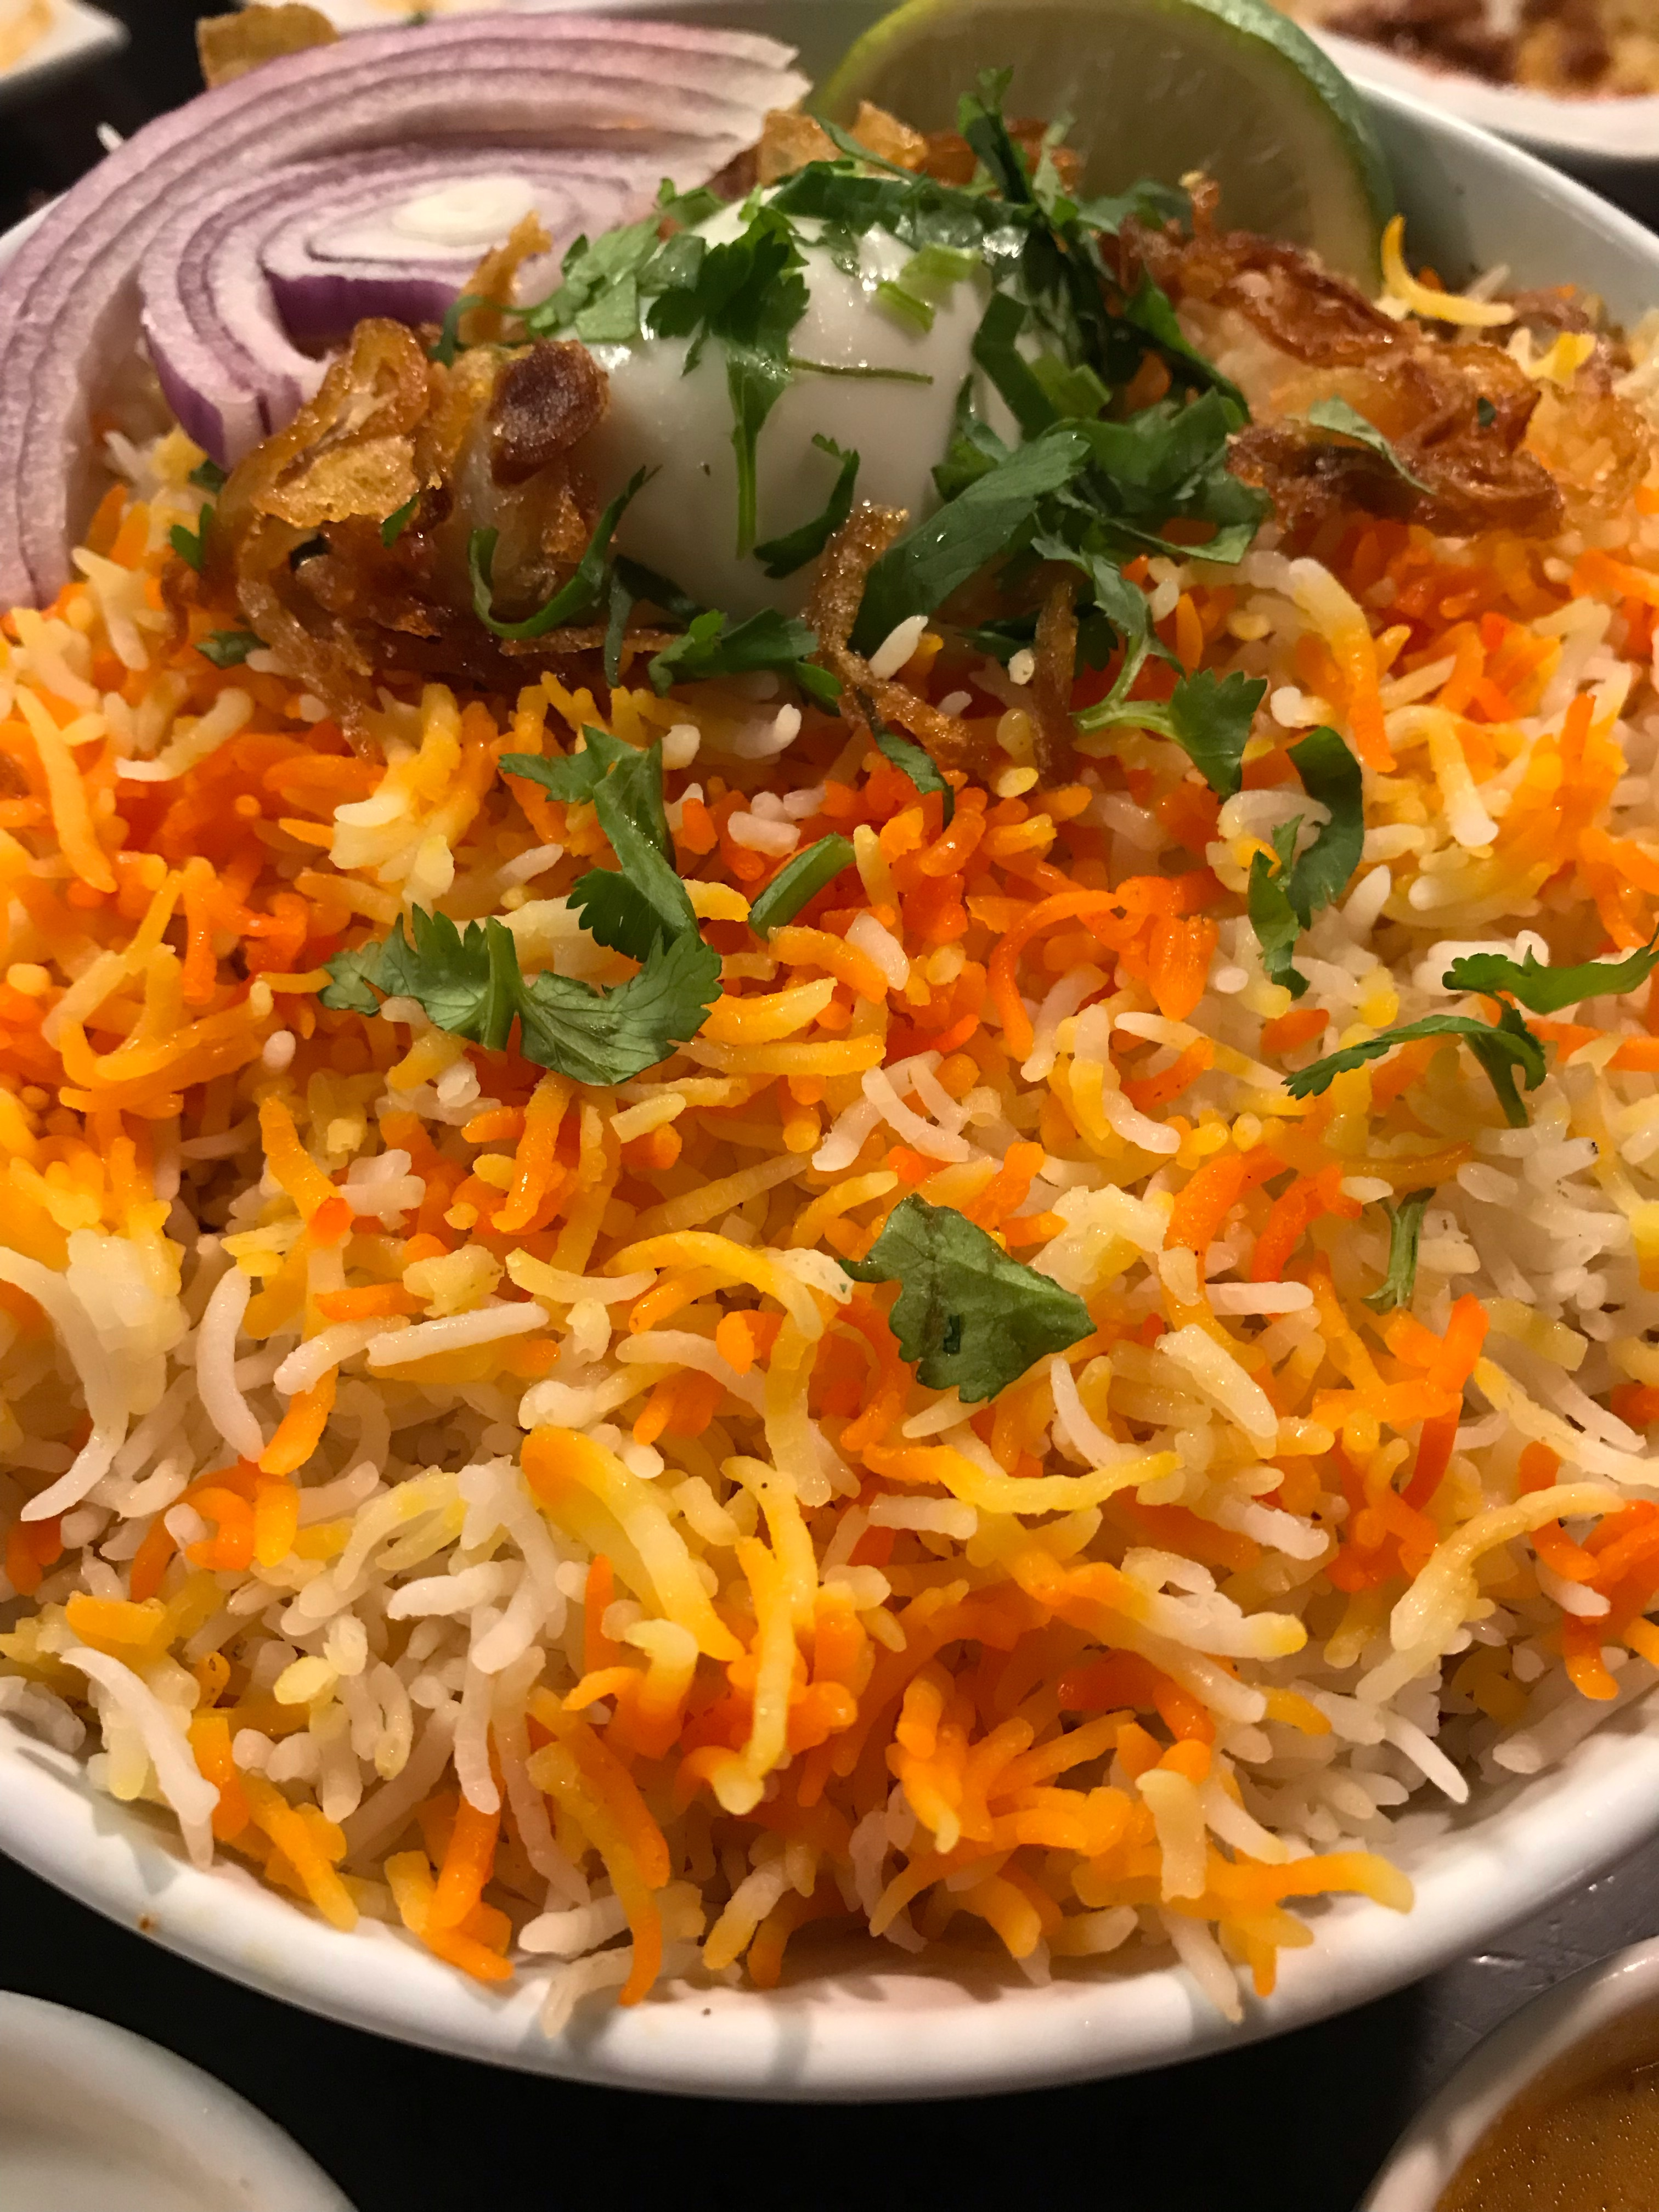 Chicken Dum Biryani Paradise Biryani Pointe Eats For Me Also recommended chicken 65, cooked al dente and just the right level of spicy. eats for me